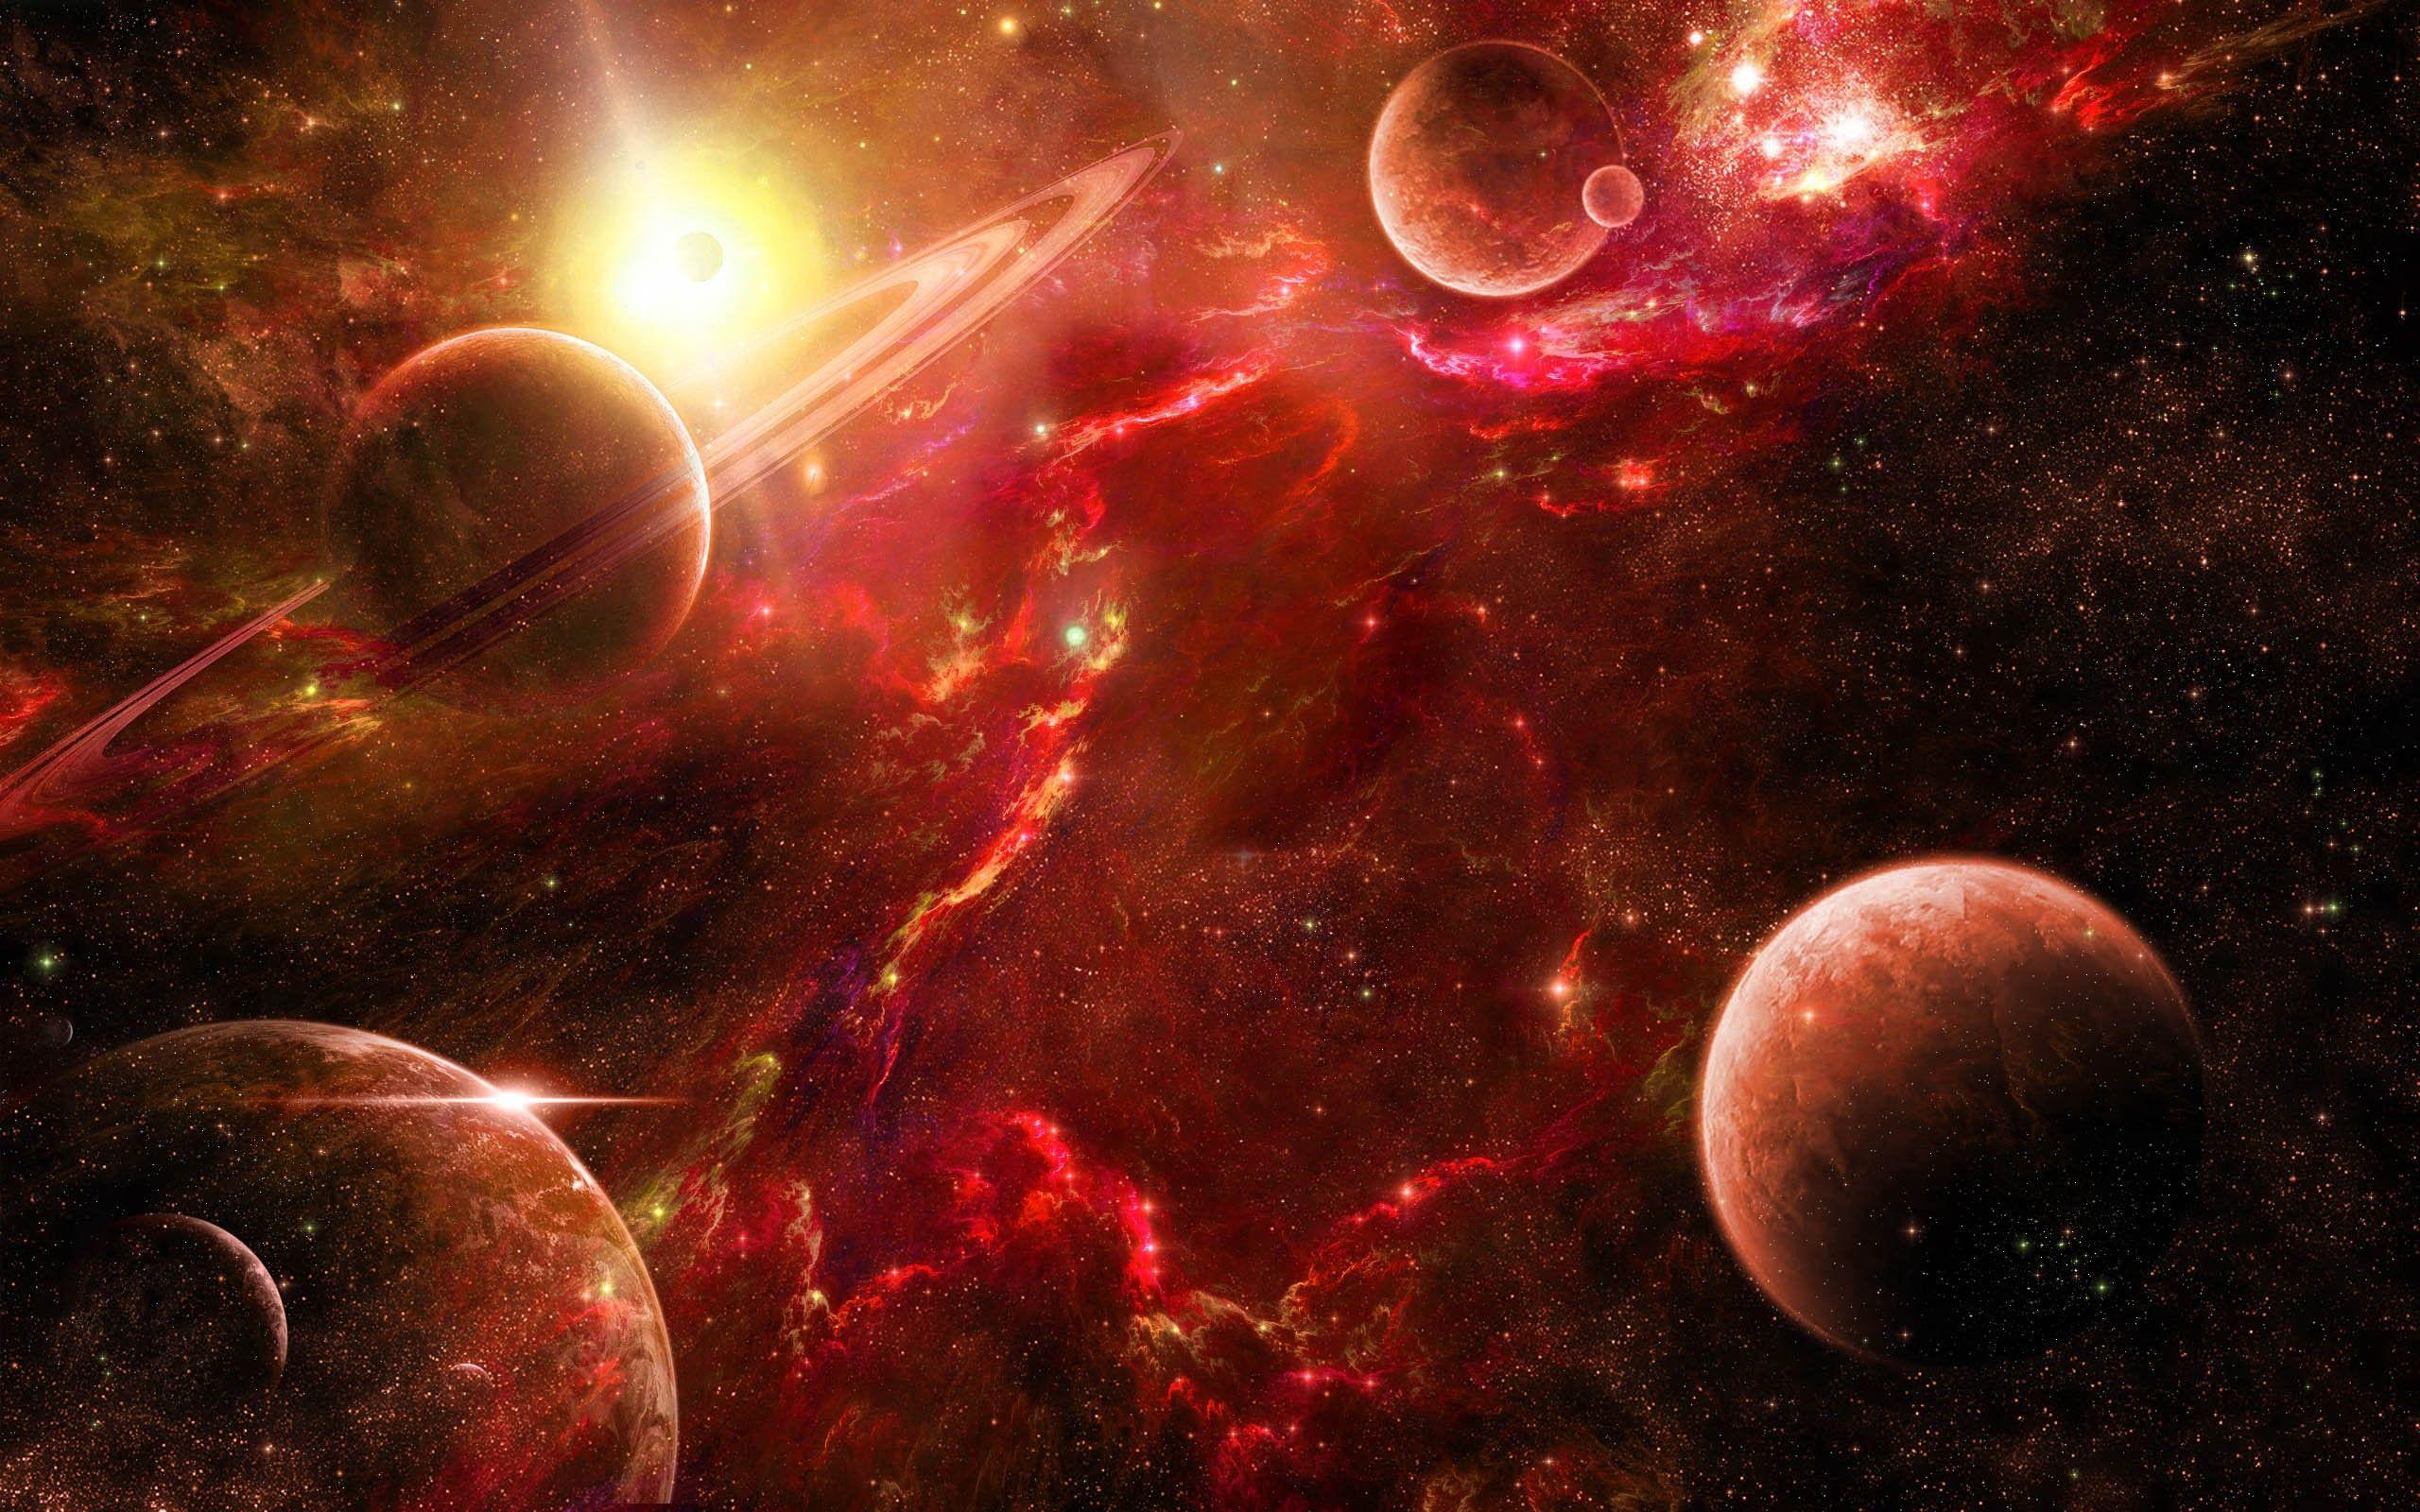 Stunning Visions of Outer Space Wallpapers